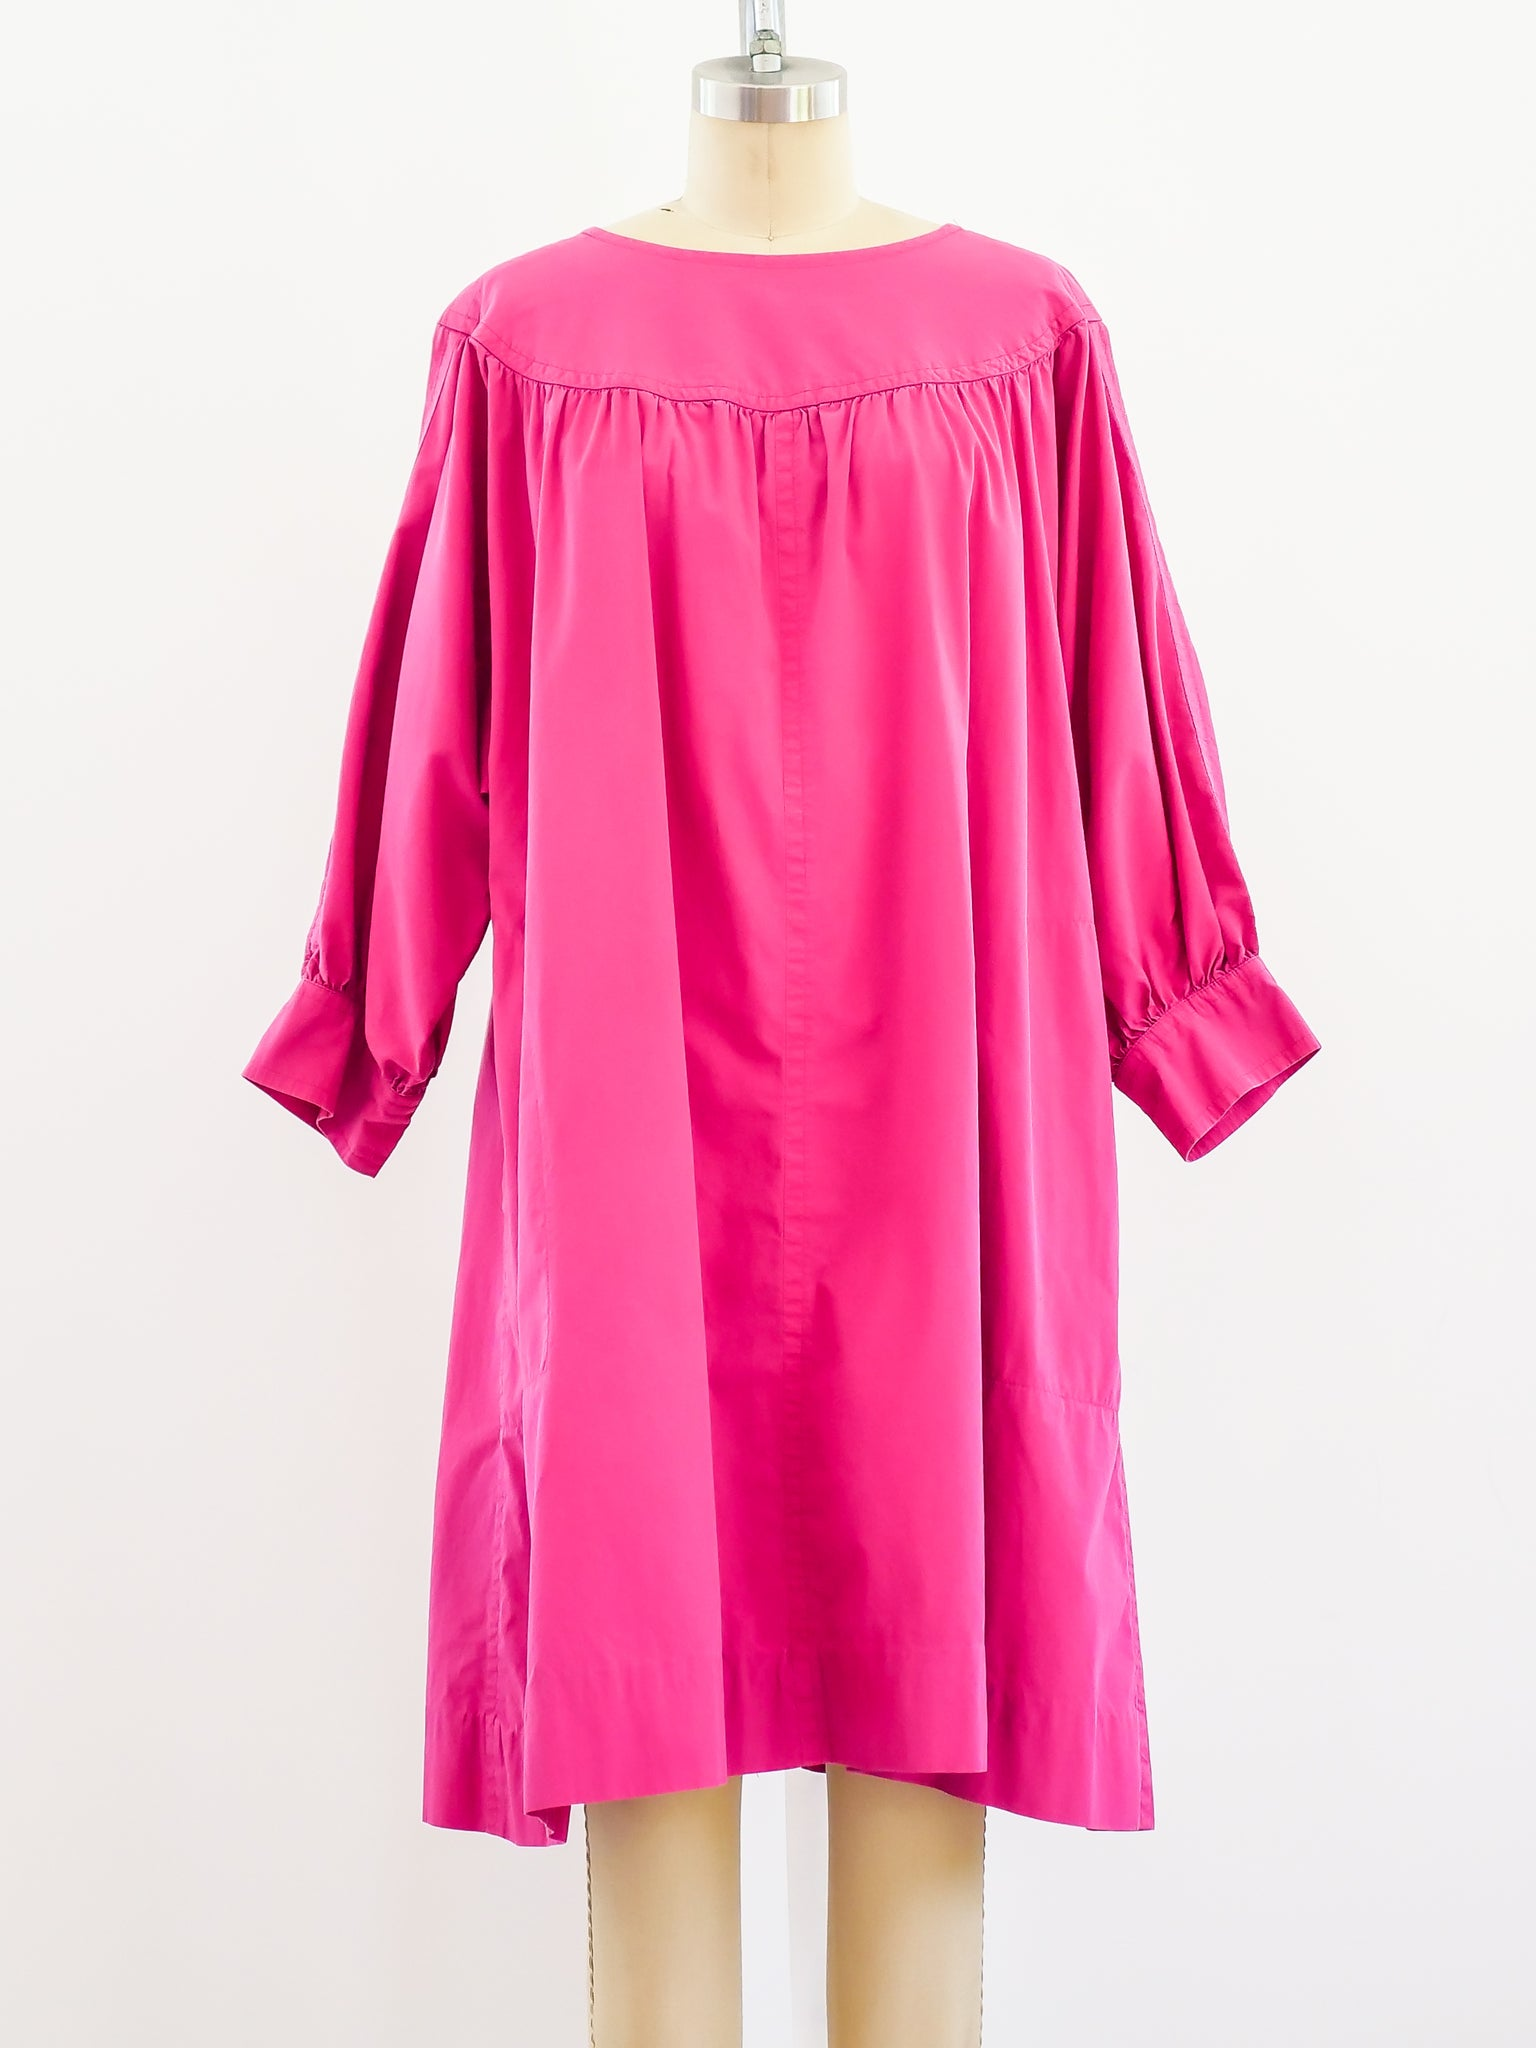 YSL Fushia Cotton Smock Dress